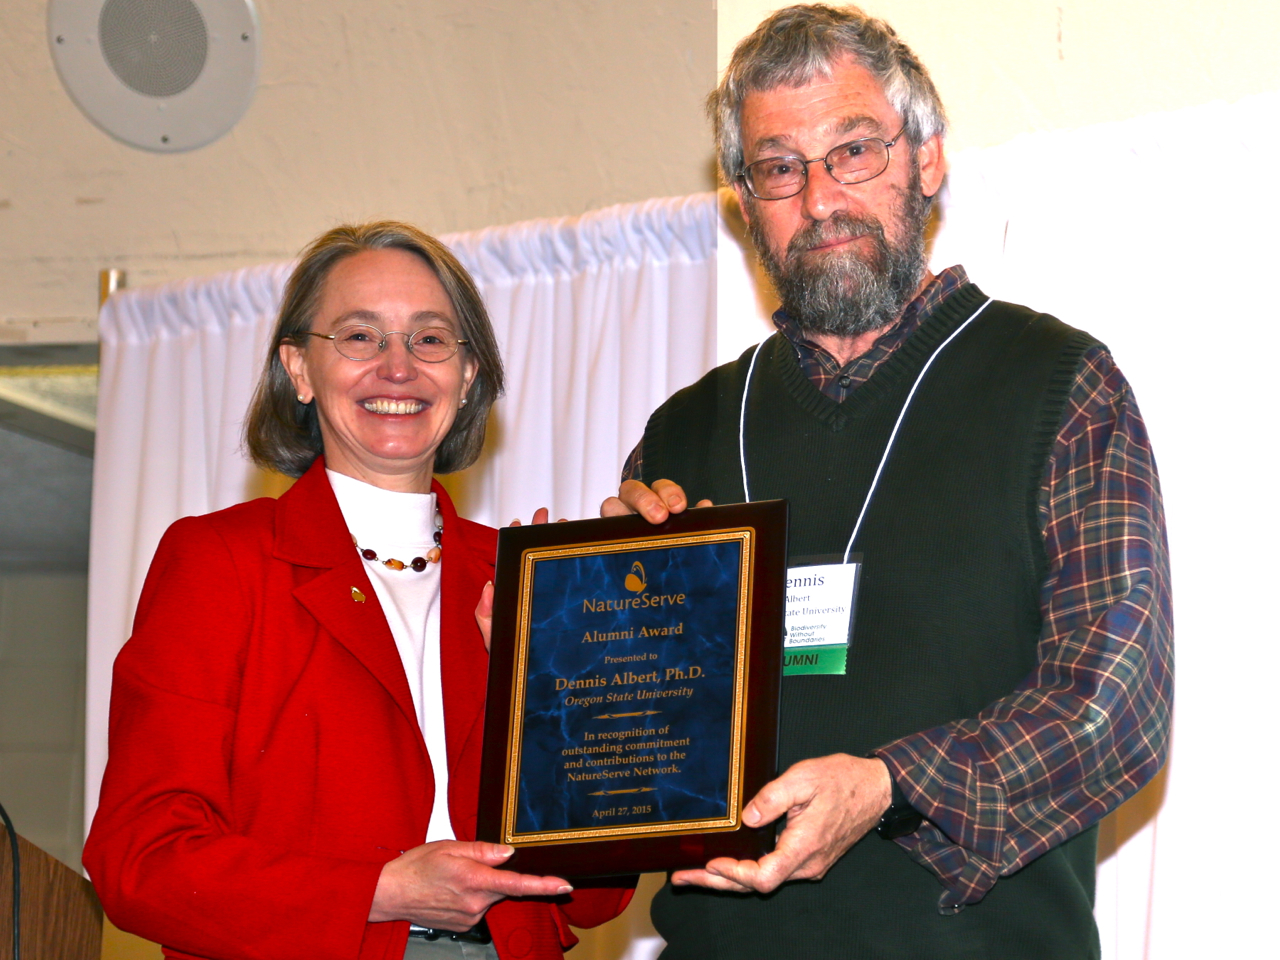 Dennis Albert, a former lead ecologist for the Michigan Natural Features Inventory, receives the 2015 NatureServe Alumni Award.